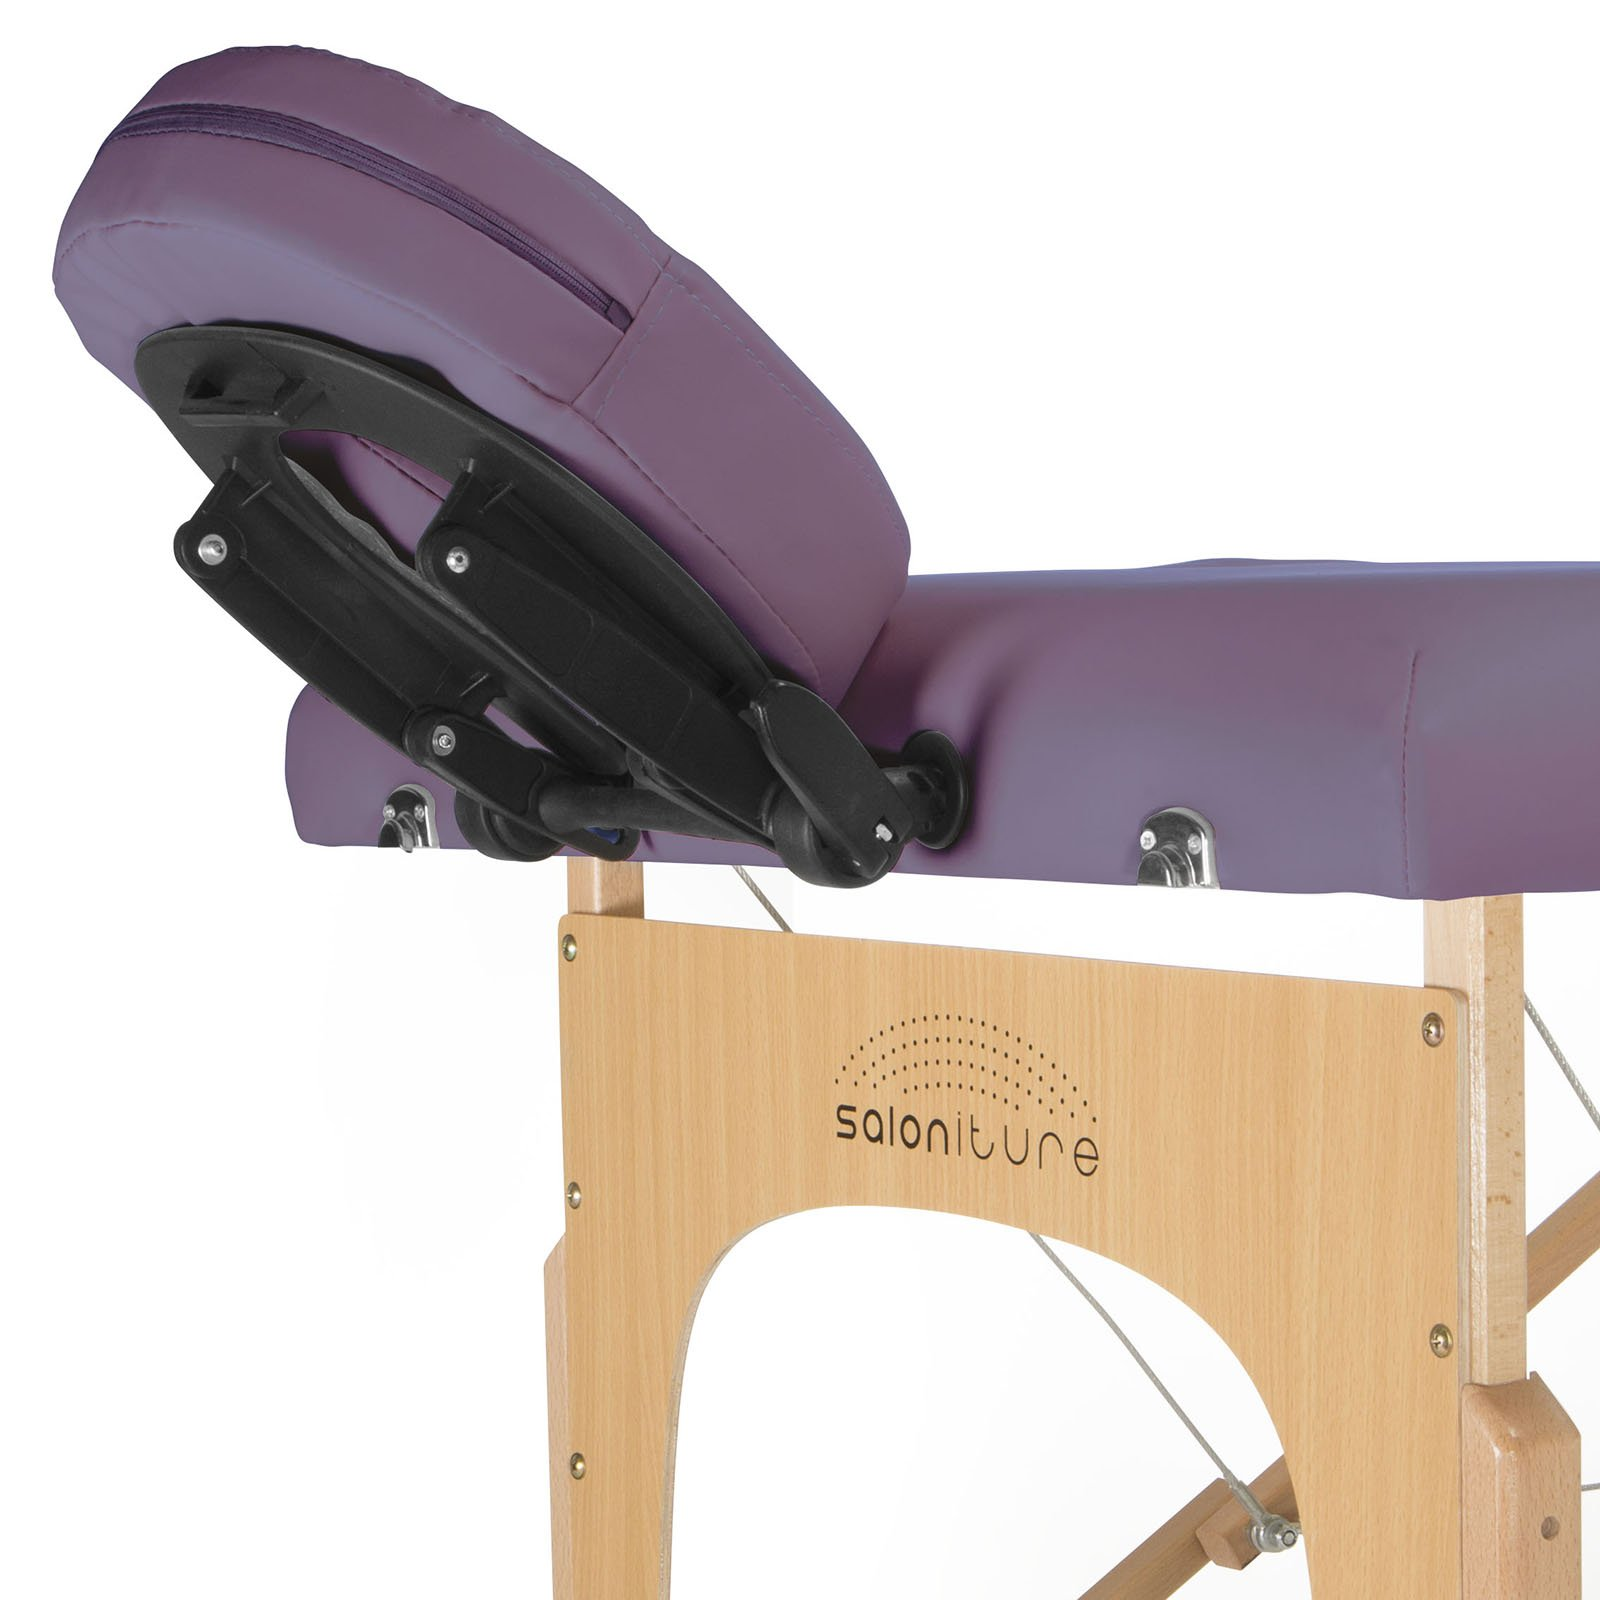 Saloniture Professional Portable Folding Massage Table with Carrying Case - Lavender by Saloniture (Image #2)